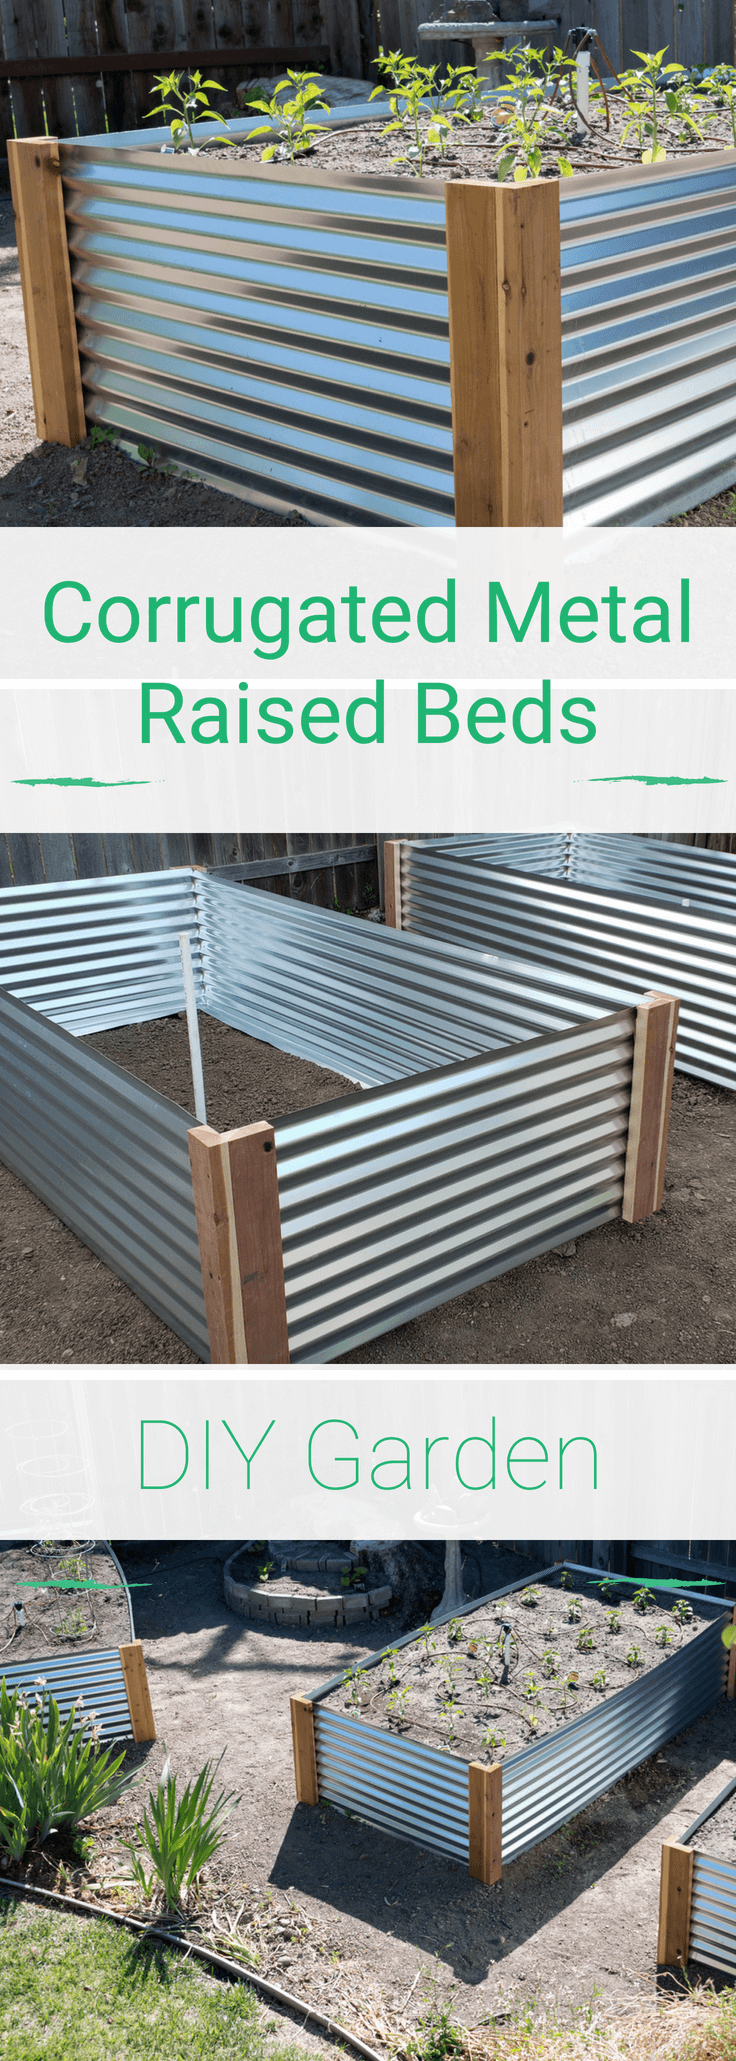 Raised Garden Beds Corrugated Metal Pinterest